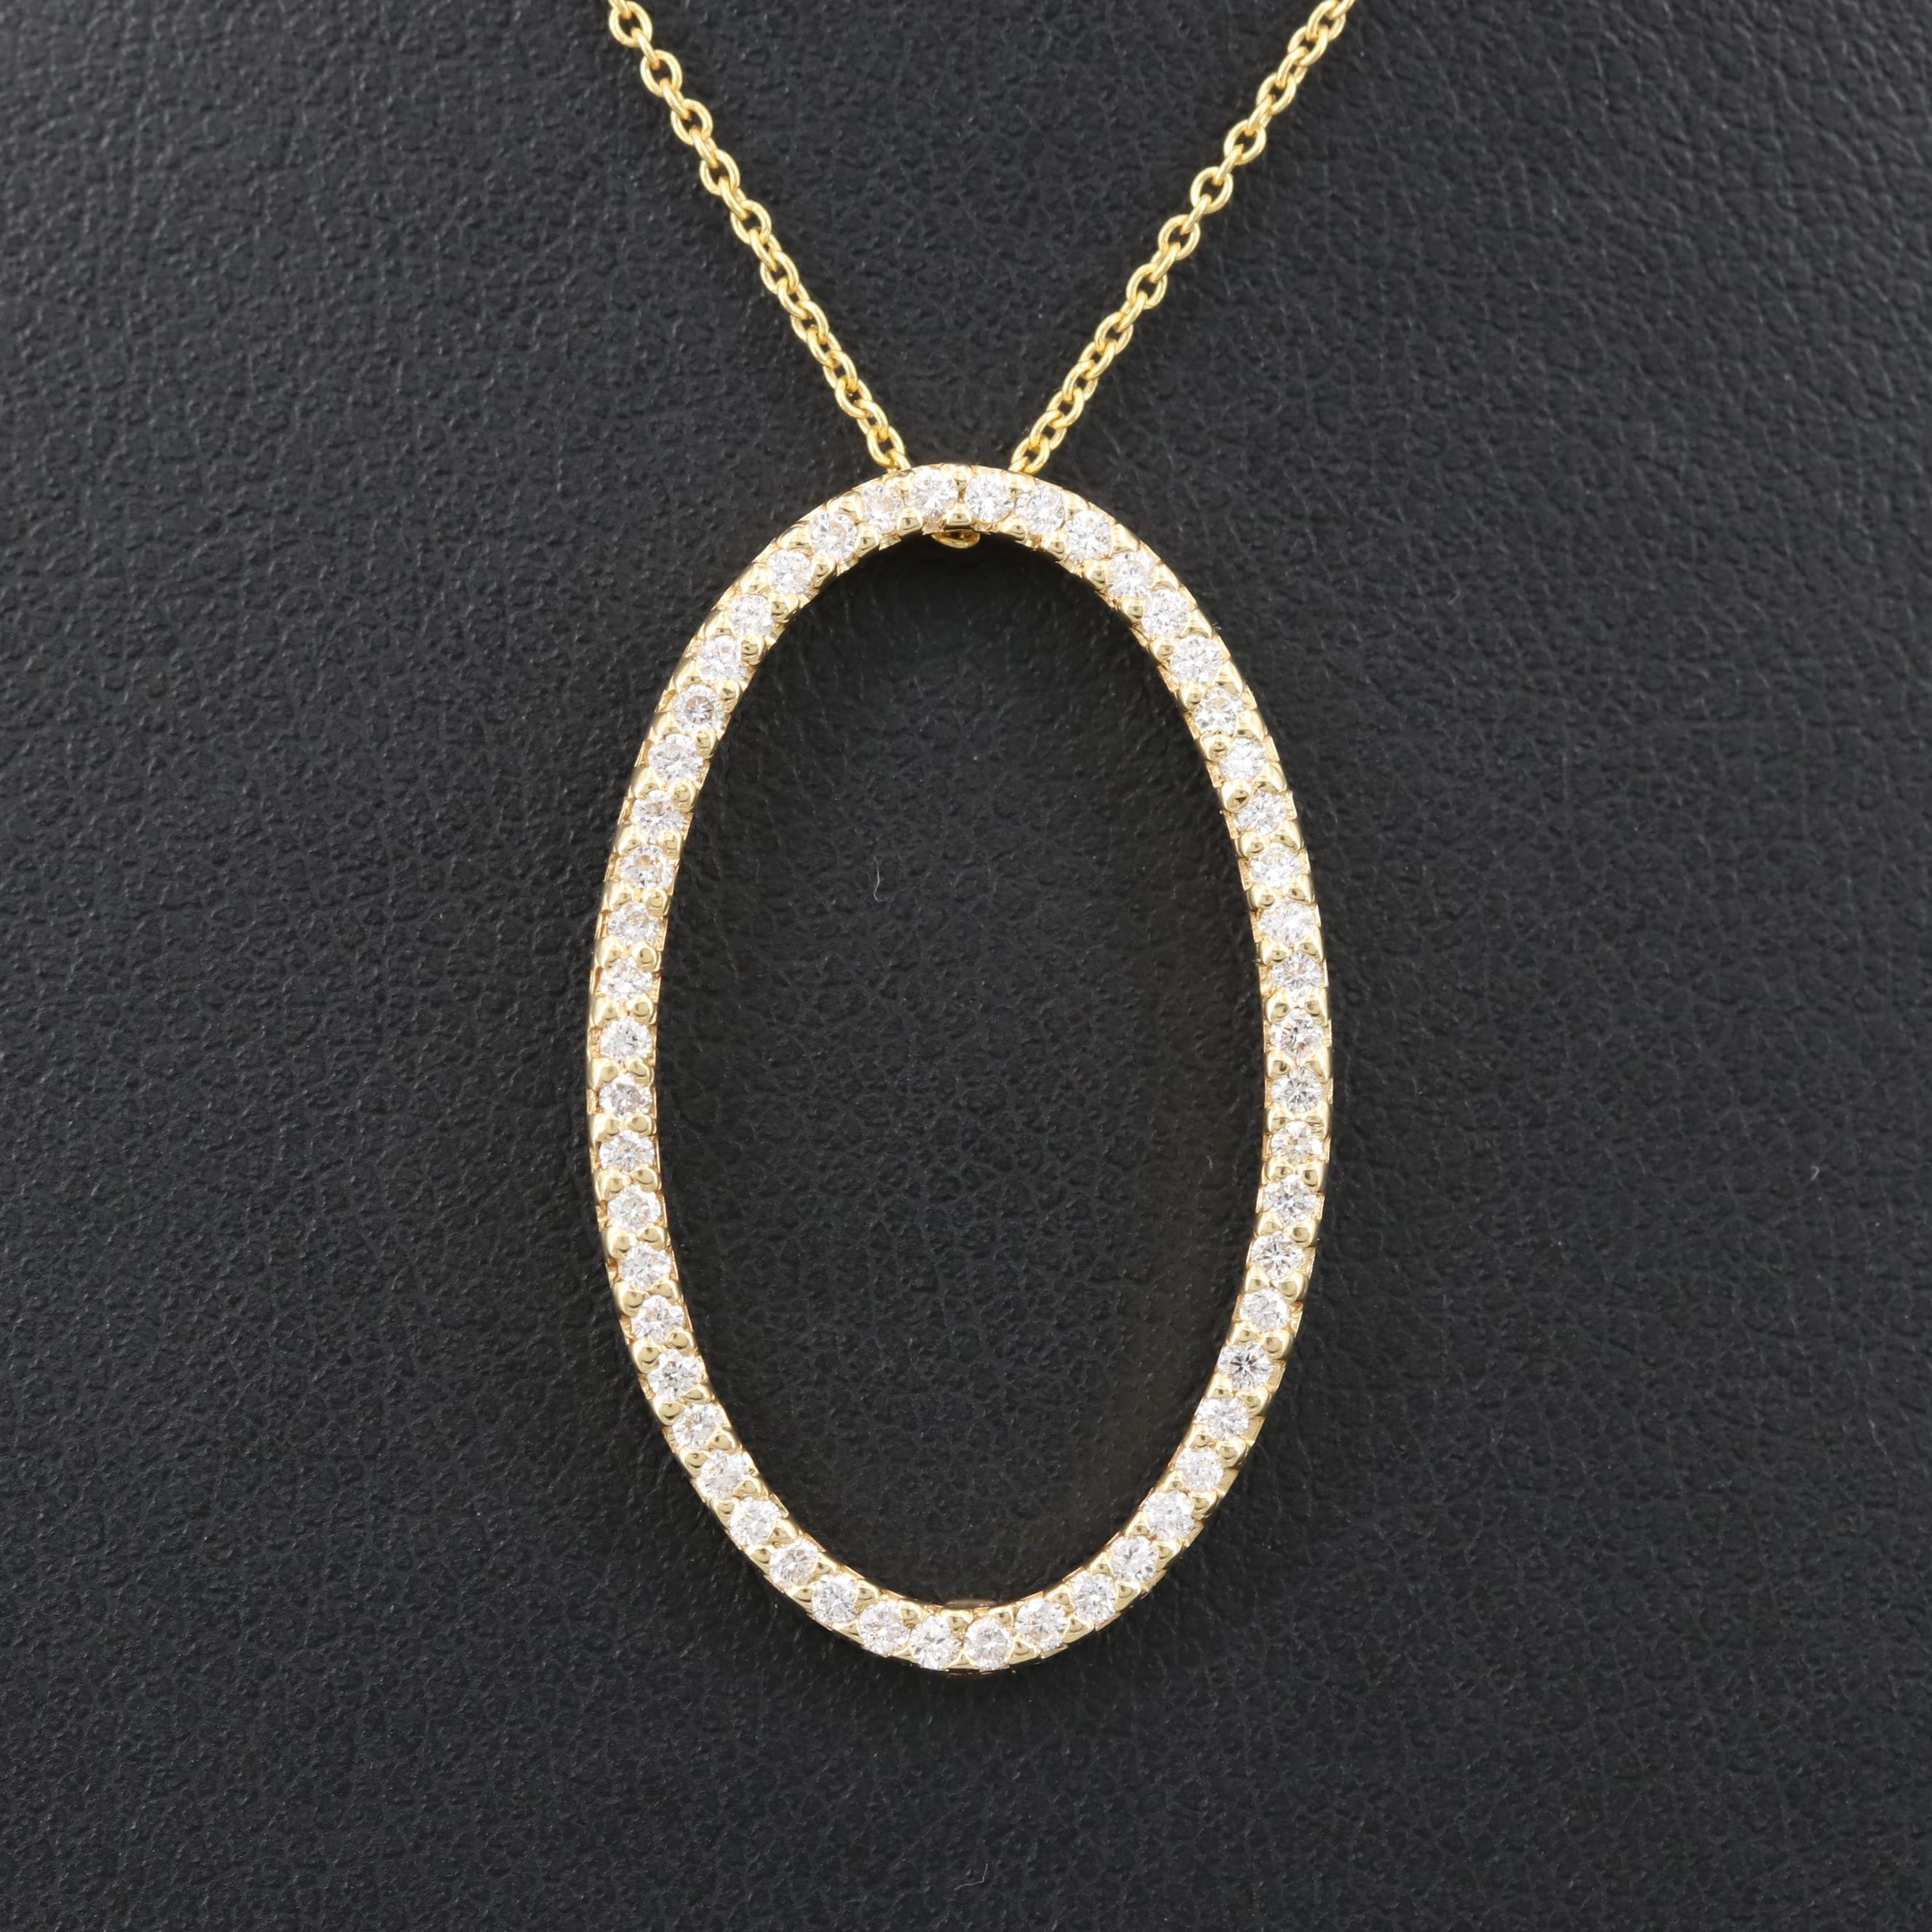 Roberto Coin 18K Yellow Gold Diamond Oval Pendant Adjustable Chain Necklace